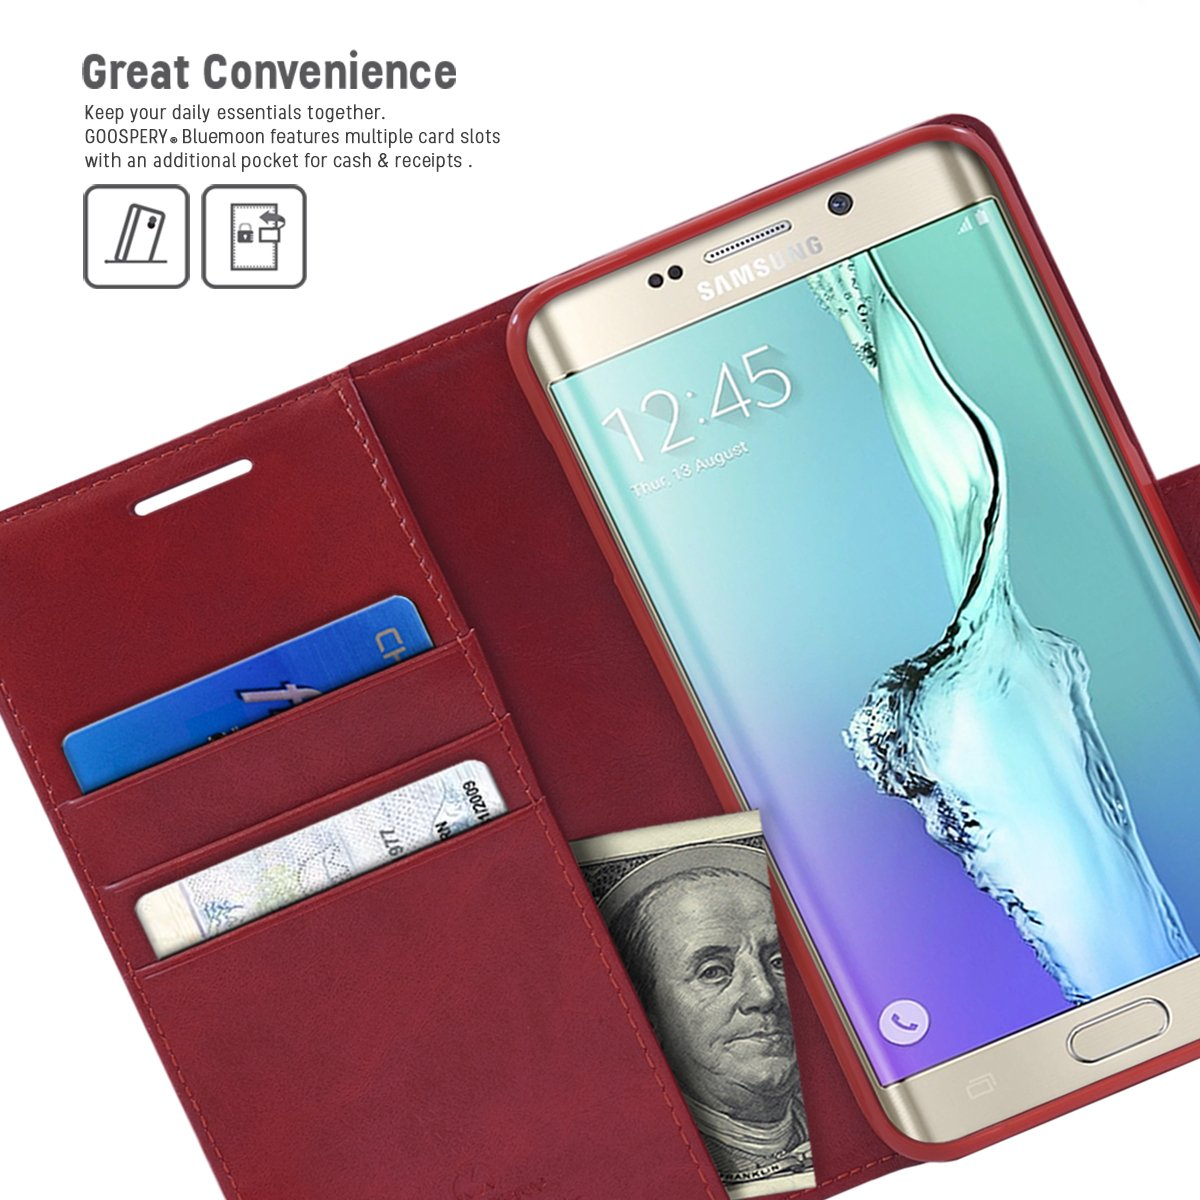 Galaxy S6 Edge Plus Case Drop Protection Goospery Iphone 8 Blue Moon Flip Hotpink Diary Wallet Smooth Synthetic Leather Texture Id Card Cash Slot W